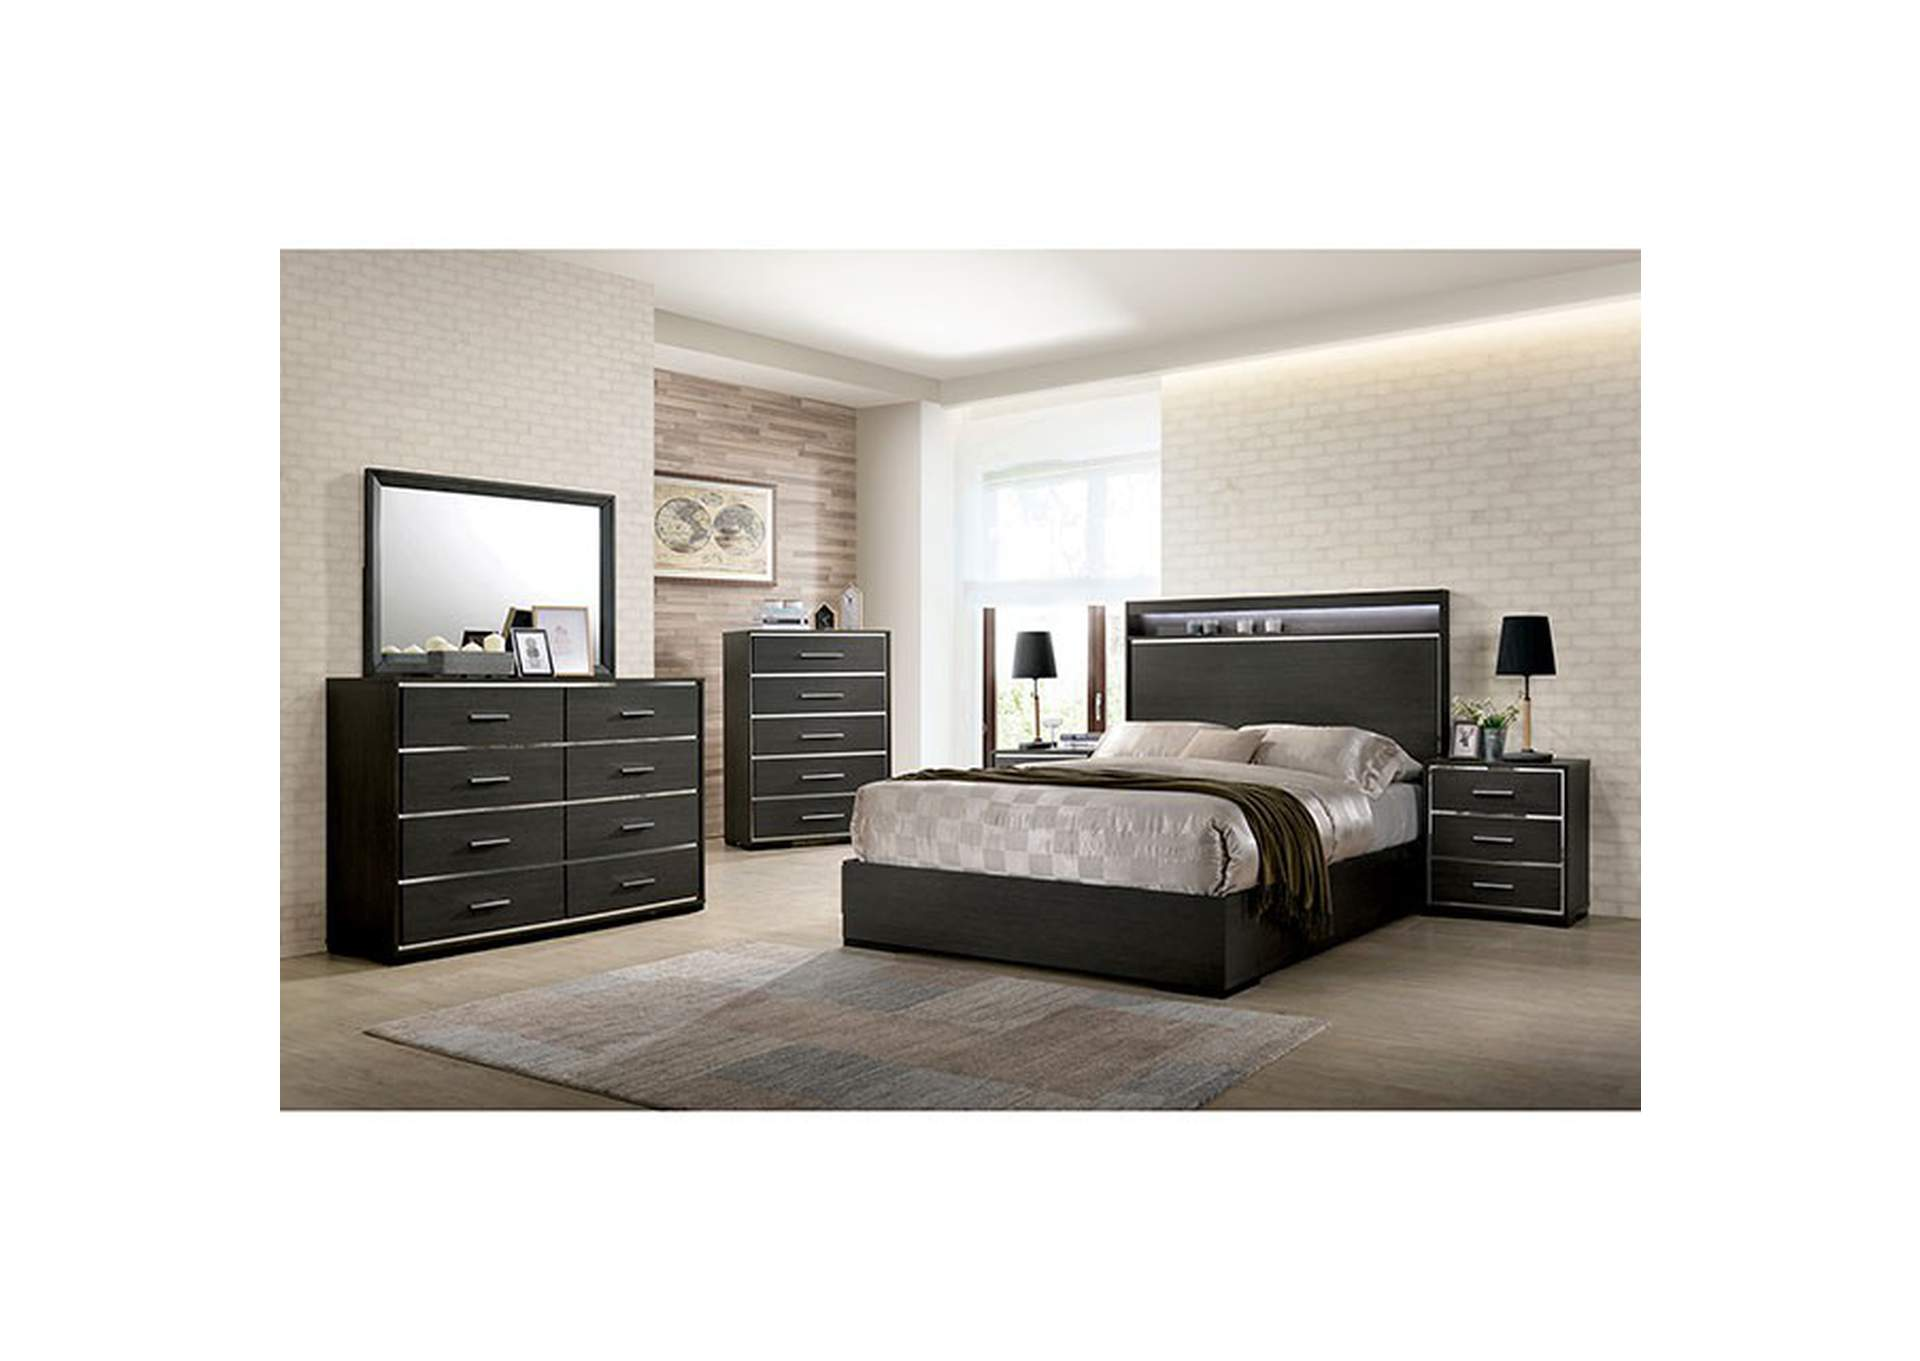 Camryn Warm Gray Queen Bed,Furniture of America